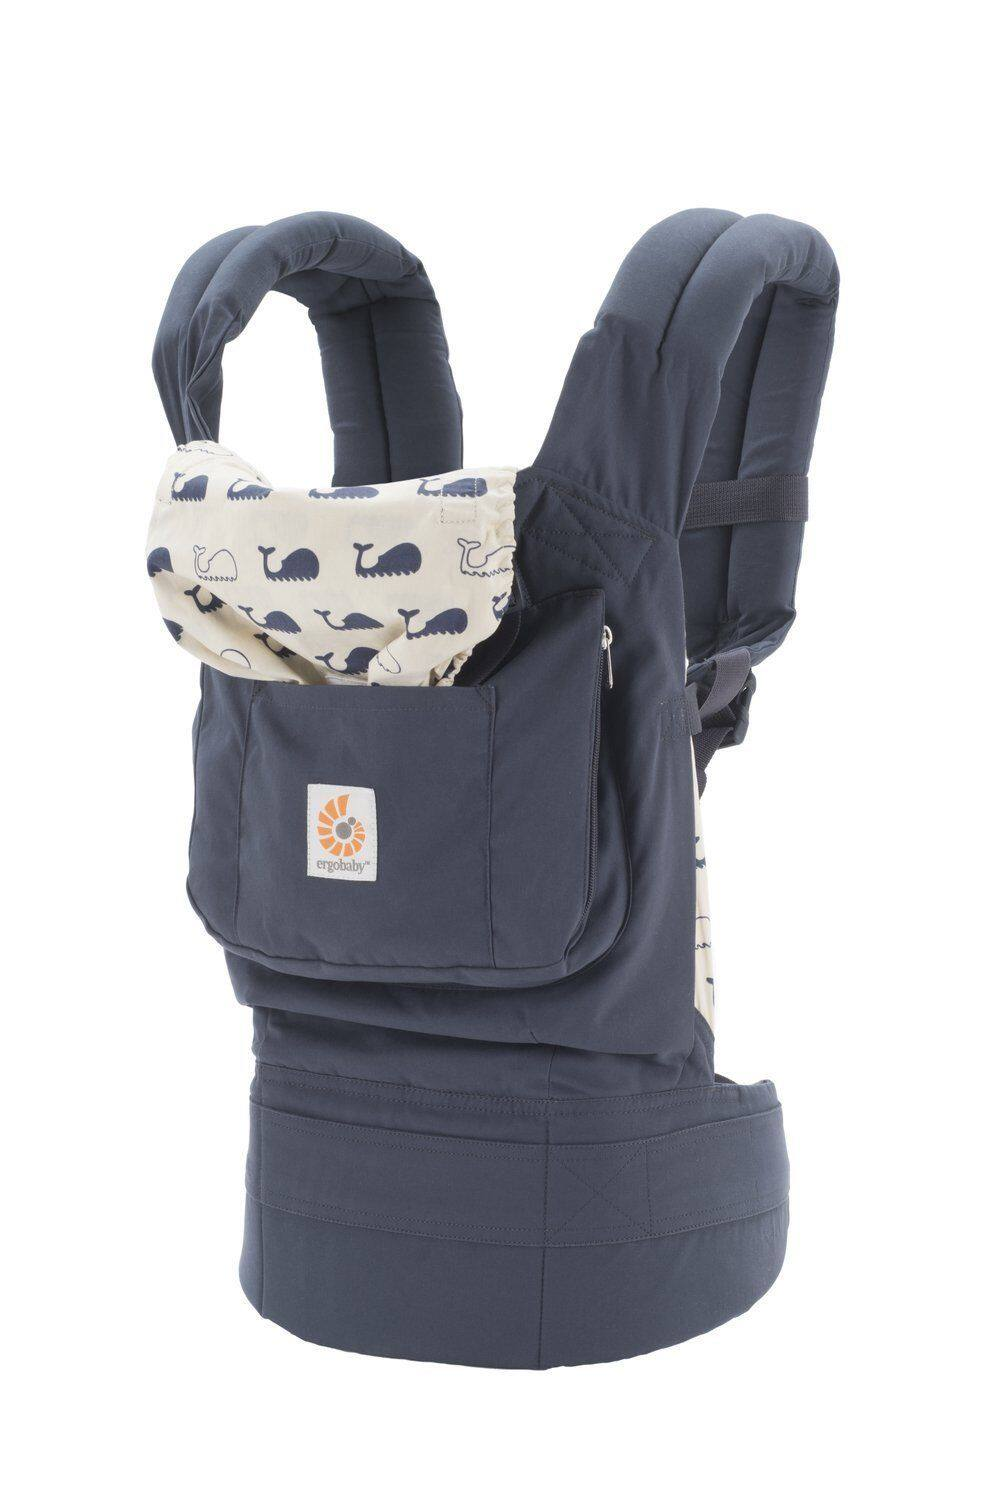 Ergobaby Original 3 Position Baby Carrier (Marine) $54.99 + Free Shipping